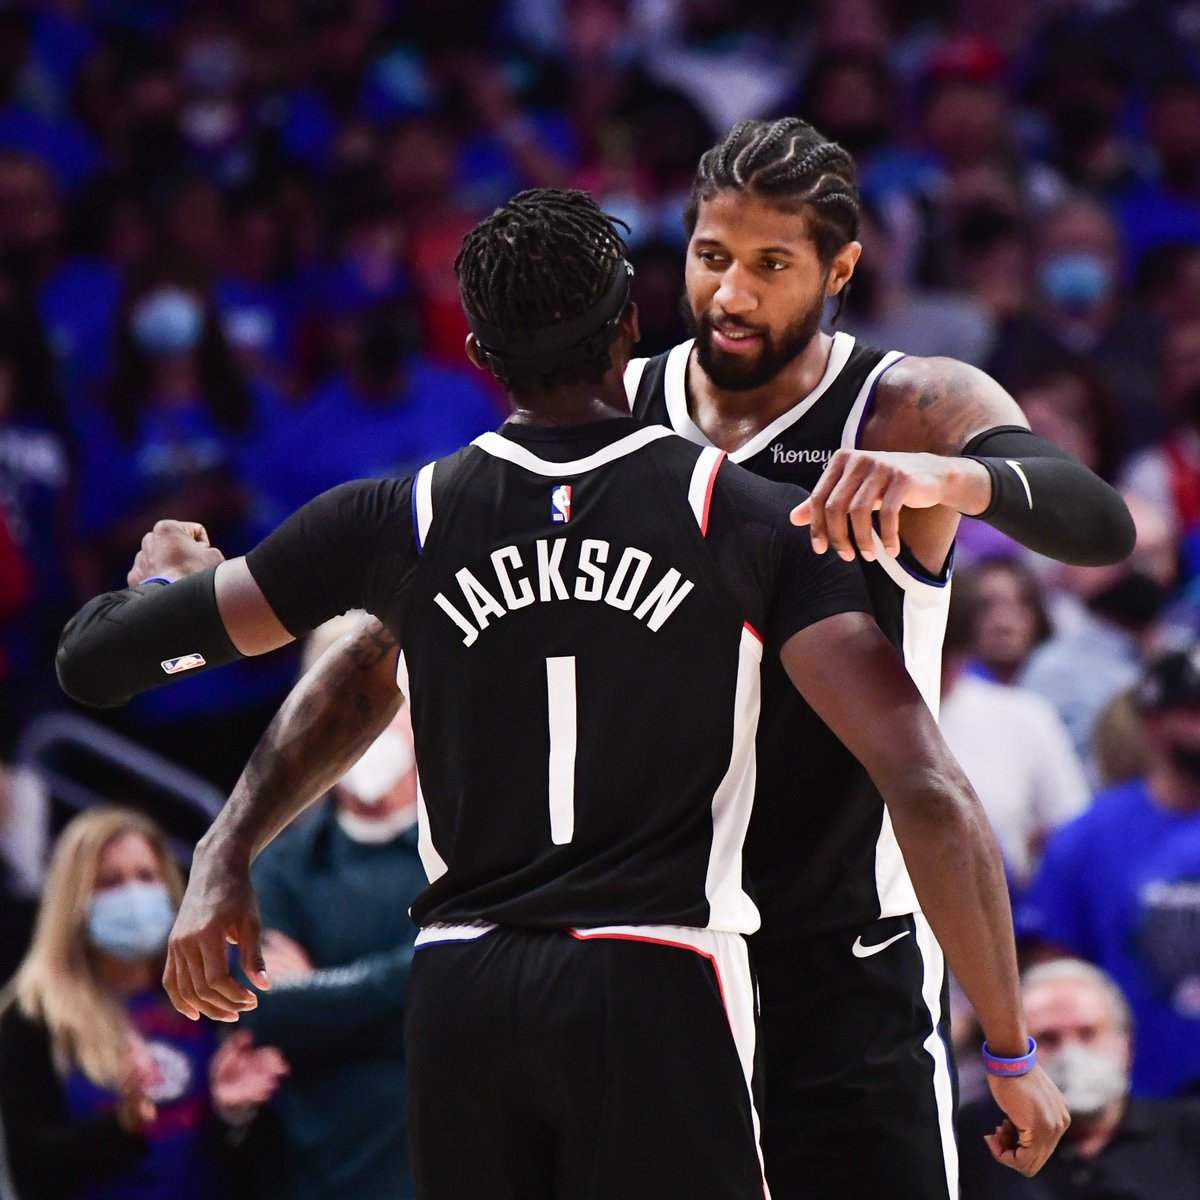 PG and Reggie BROUGHT IT tonight 🤝  George: 28 PTS, 9 REB, 7 AST, 54.3 FPTS  Jackson: 27 PTS, 10 AST, 3 STL, 53.6 FPTS https://t.co/FkpAYRlPqp